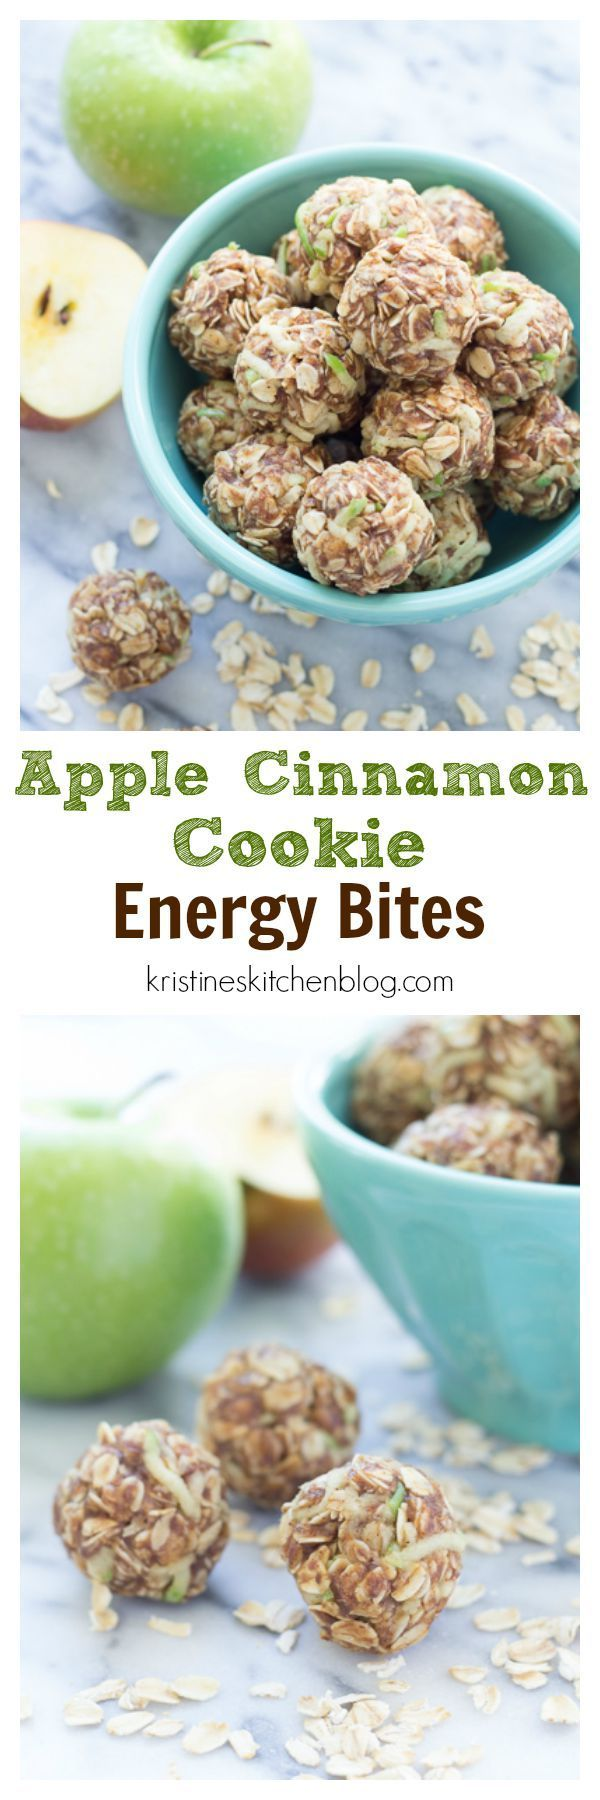 asics gel foundation walker review These Apple Cinnamon Cookie Energy Bites are a healthy snack that  39 s easy to make  Filled with oats  flaxseed  almond butter  and fresh apple